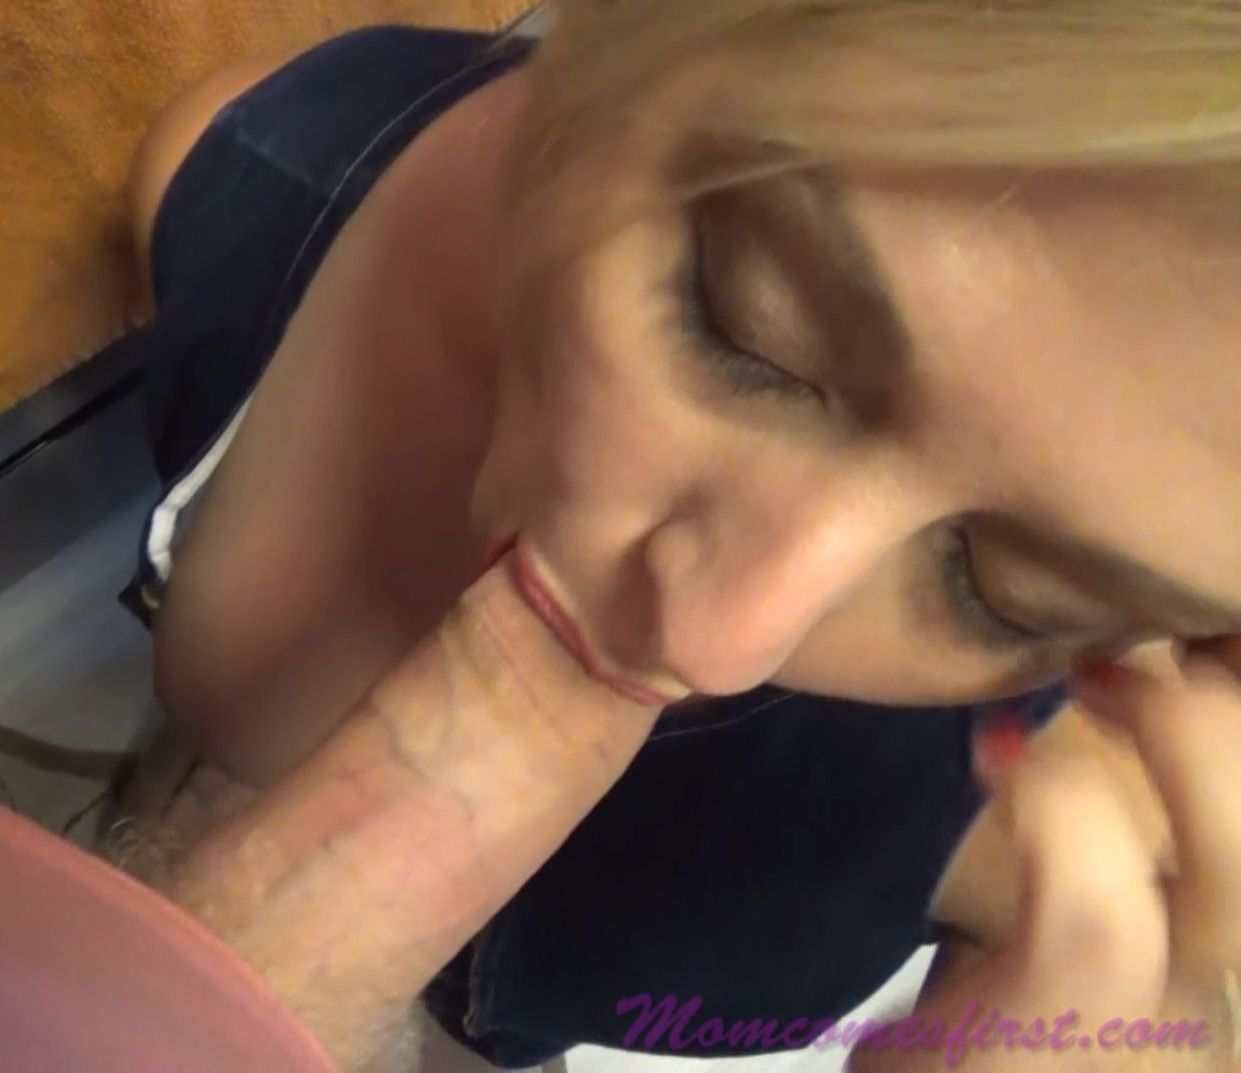 [Mom Comes First / Clips4Sale] Brianna Beach Mother's Helping Hand 1080p |